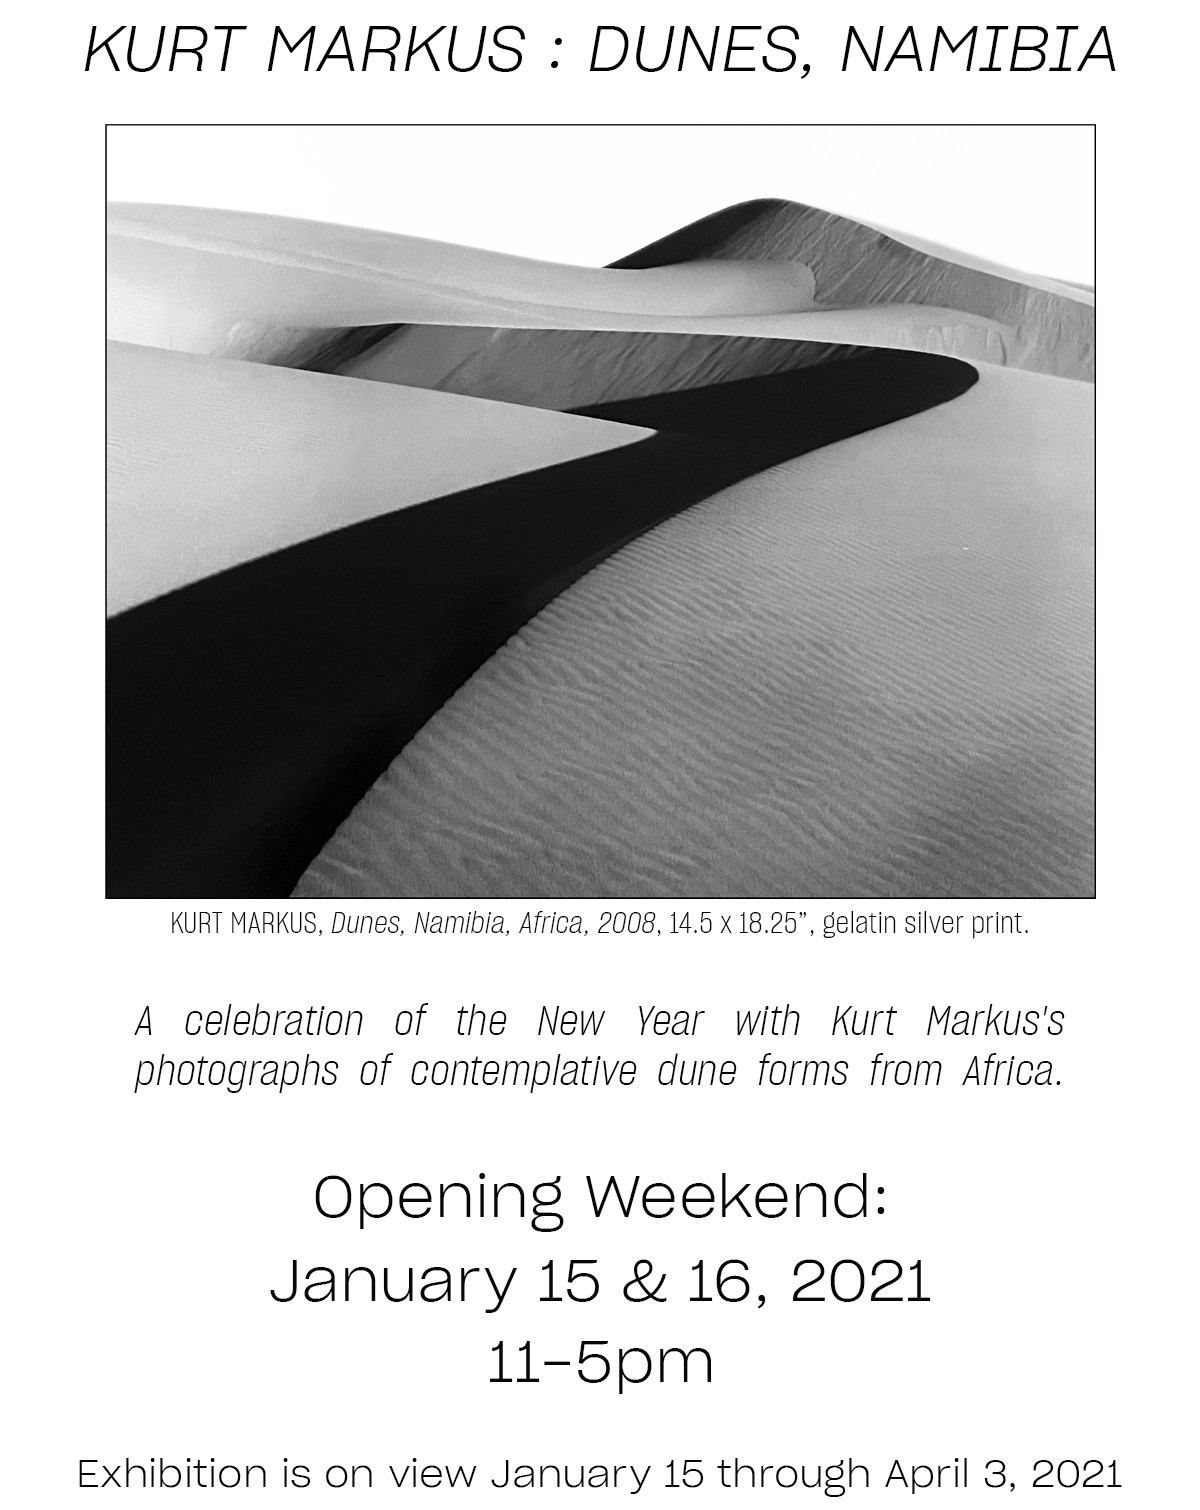 Kurt Markkus Dunes Namibia exhibition, opening weekend January 15 and 16 2021, 11-5pm